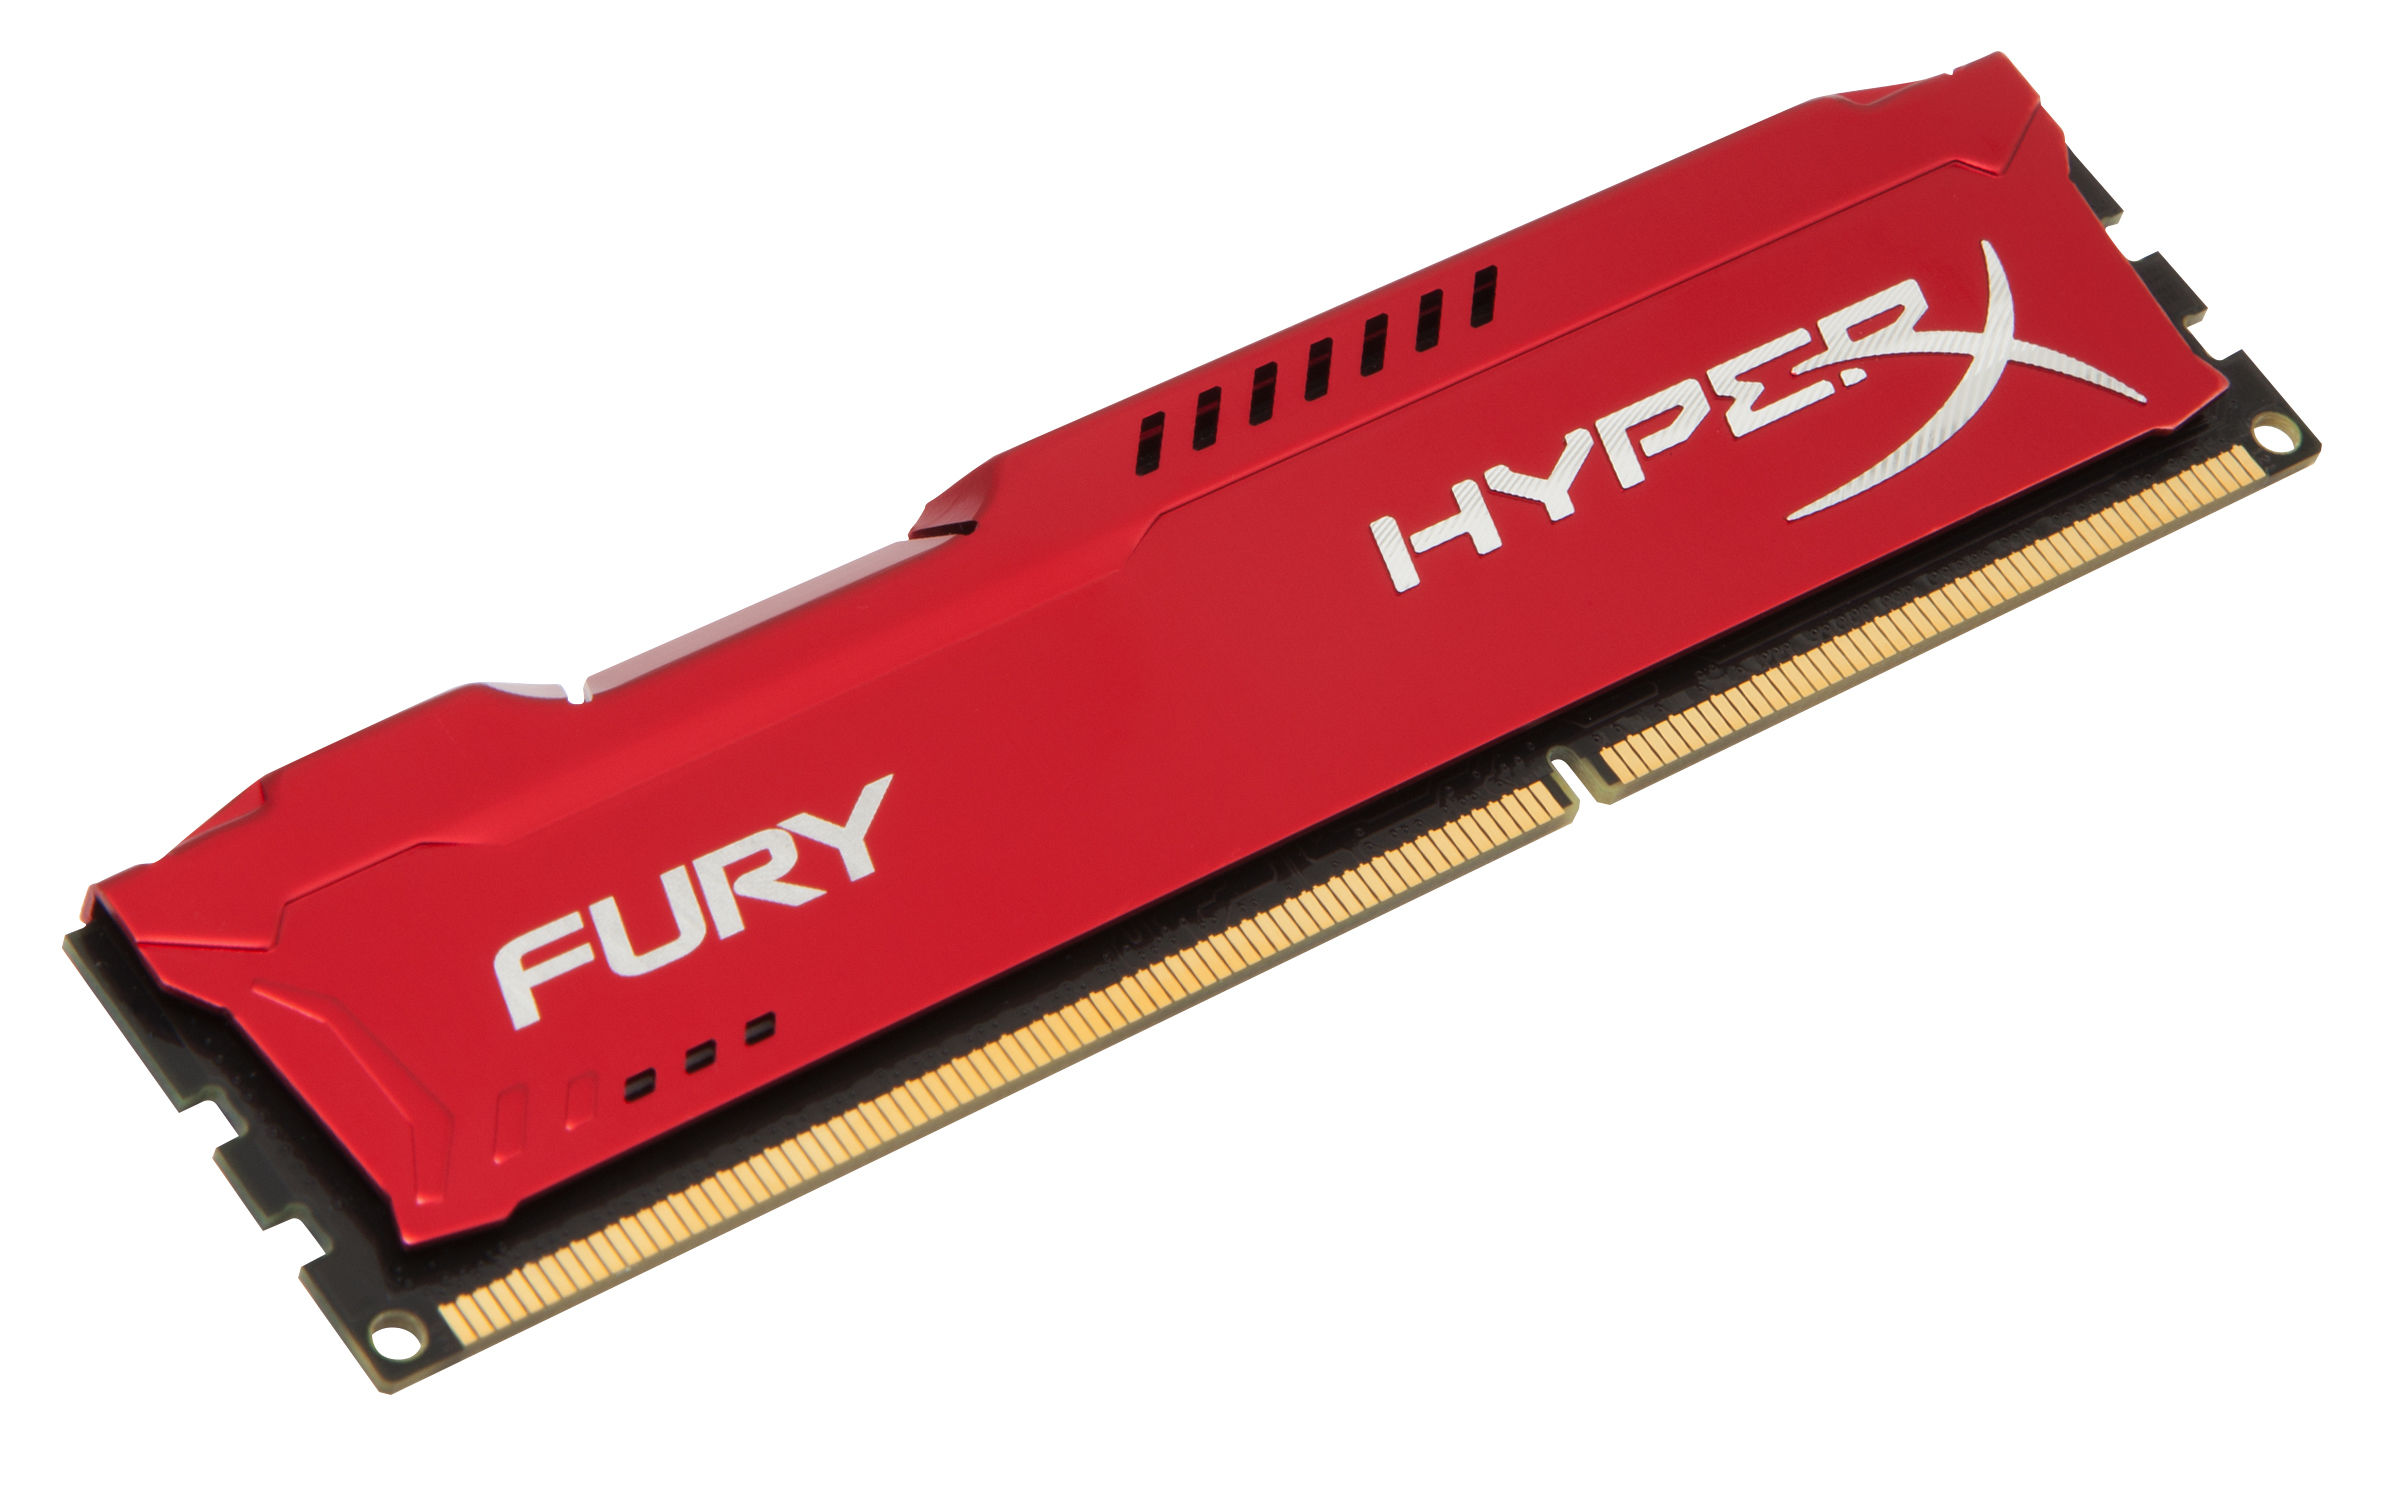 Kingston HyperX FURY Red 8GB DDR3 1866MHz 1x8GB